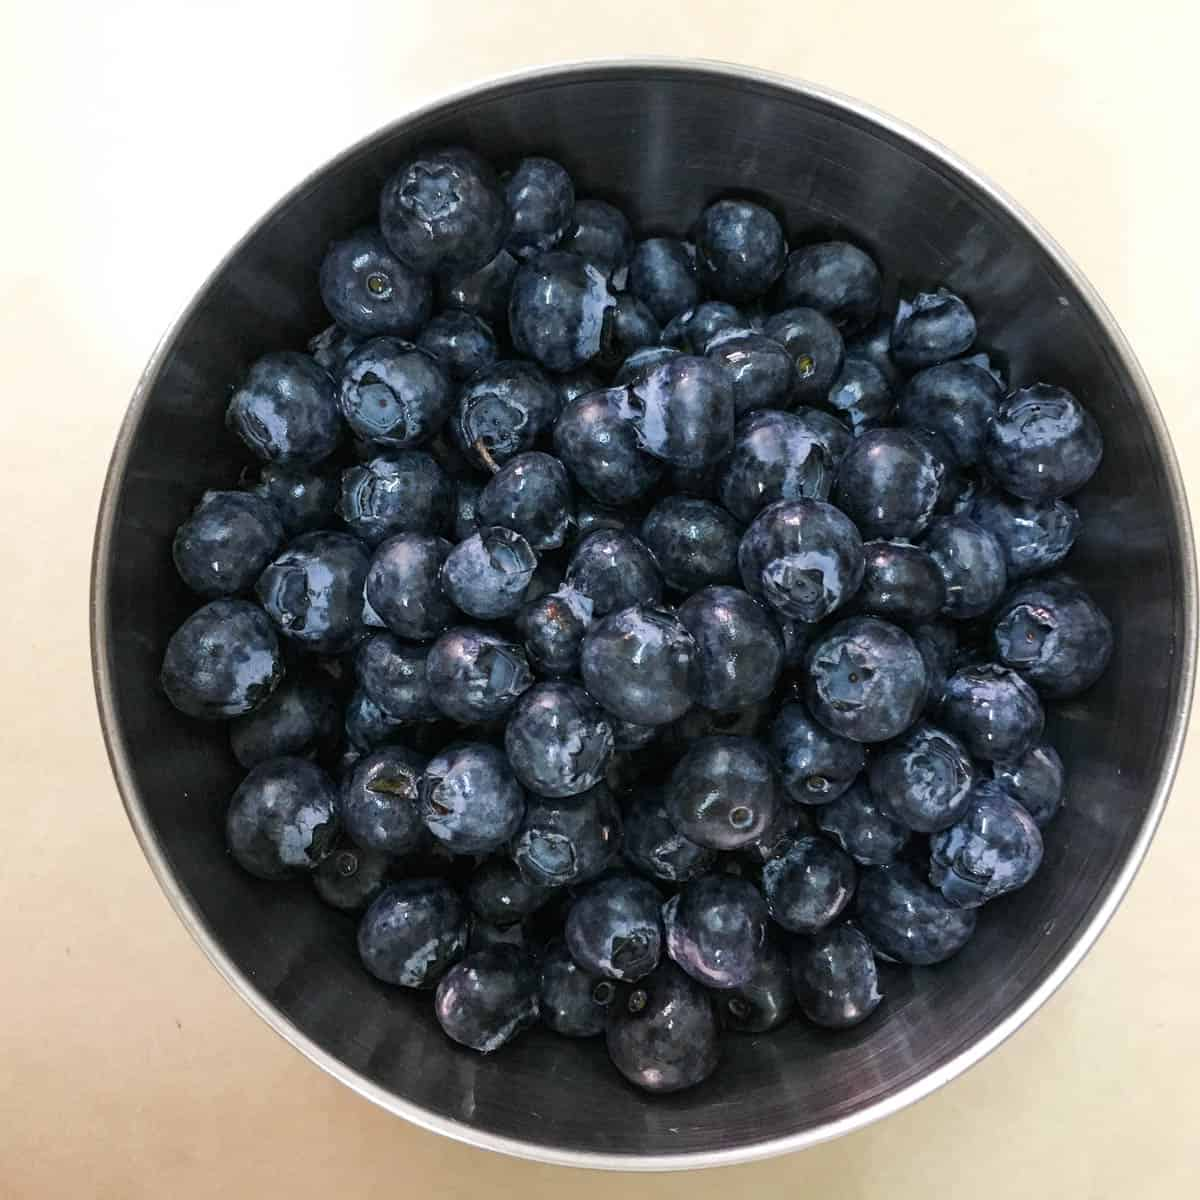 A small bowl of fresh blueberries